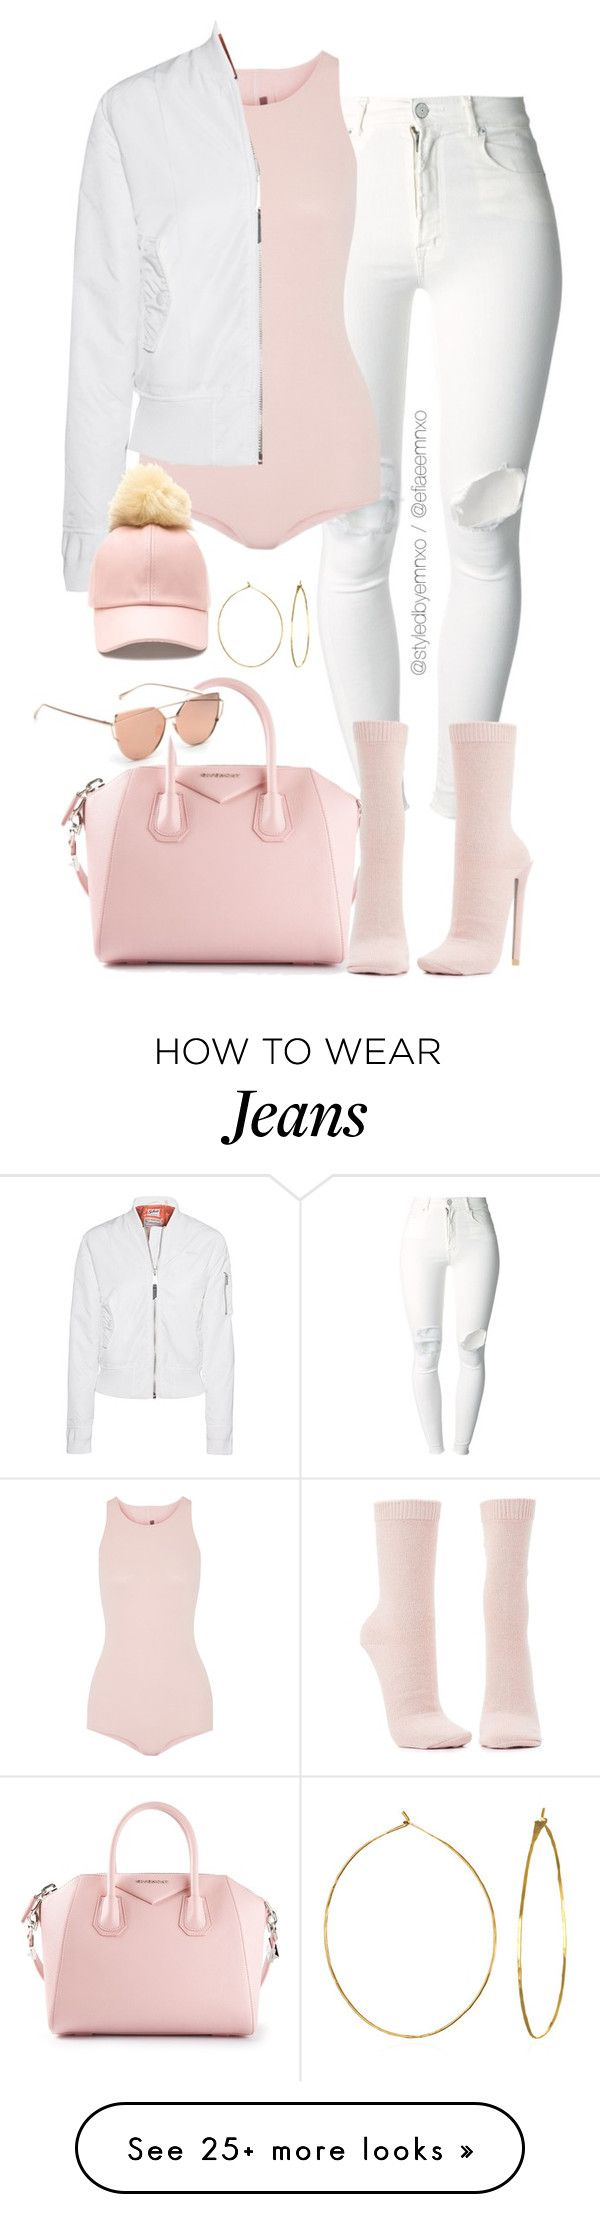 """Yeezy D.I.Y"" by efiaeemnxo on Polyvore featuring (+) PEOPLE, Givenchy, Rick Owens, Schott NYC, Charlotte Russe, Phyllis + Rosie, DIY, sbemnxo and styledbyemnxo"